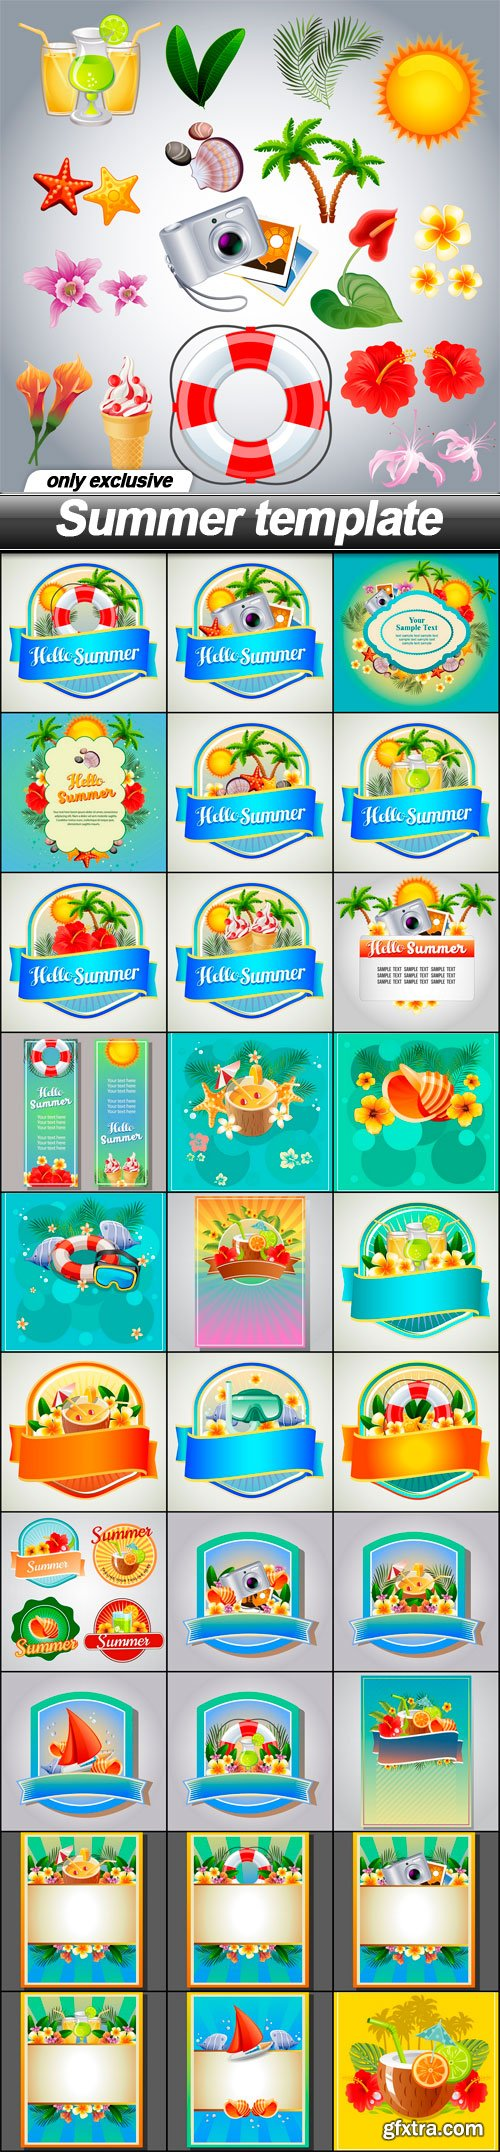 Summer template - 31 EPS